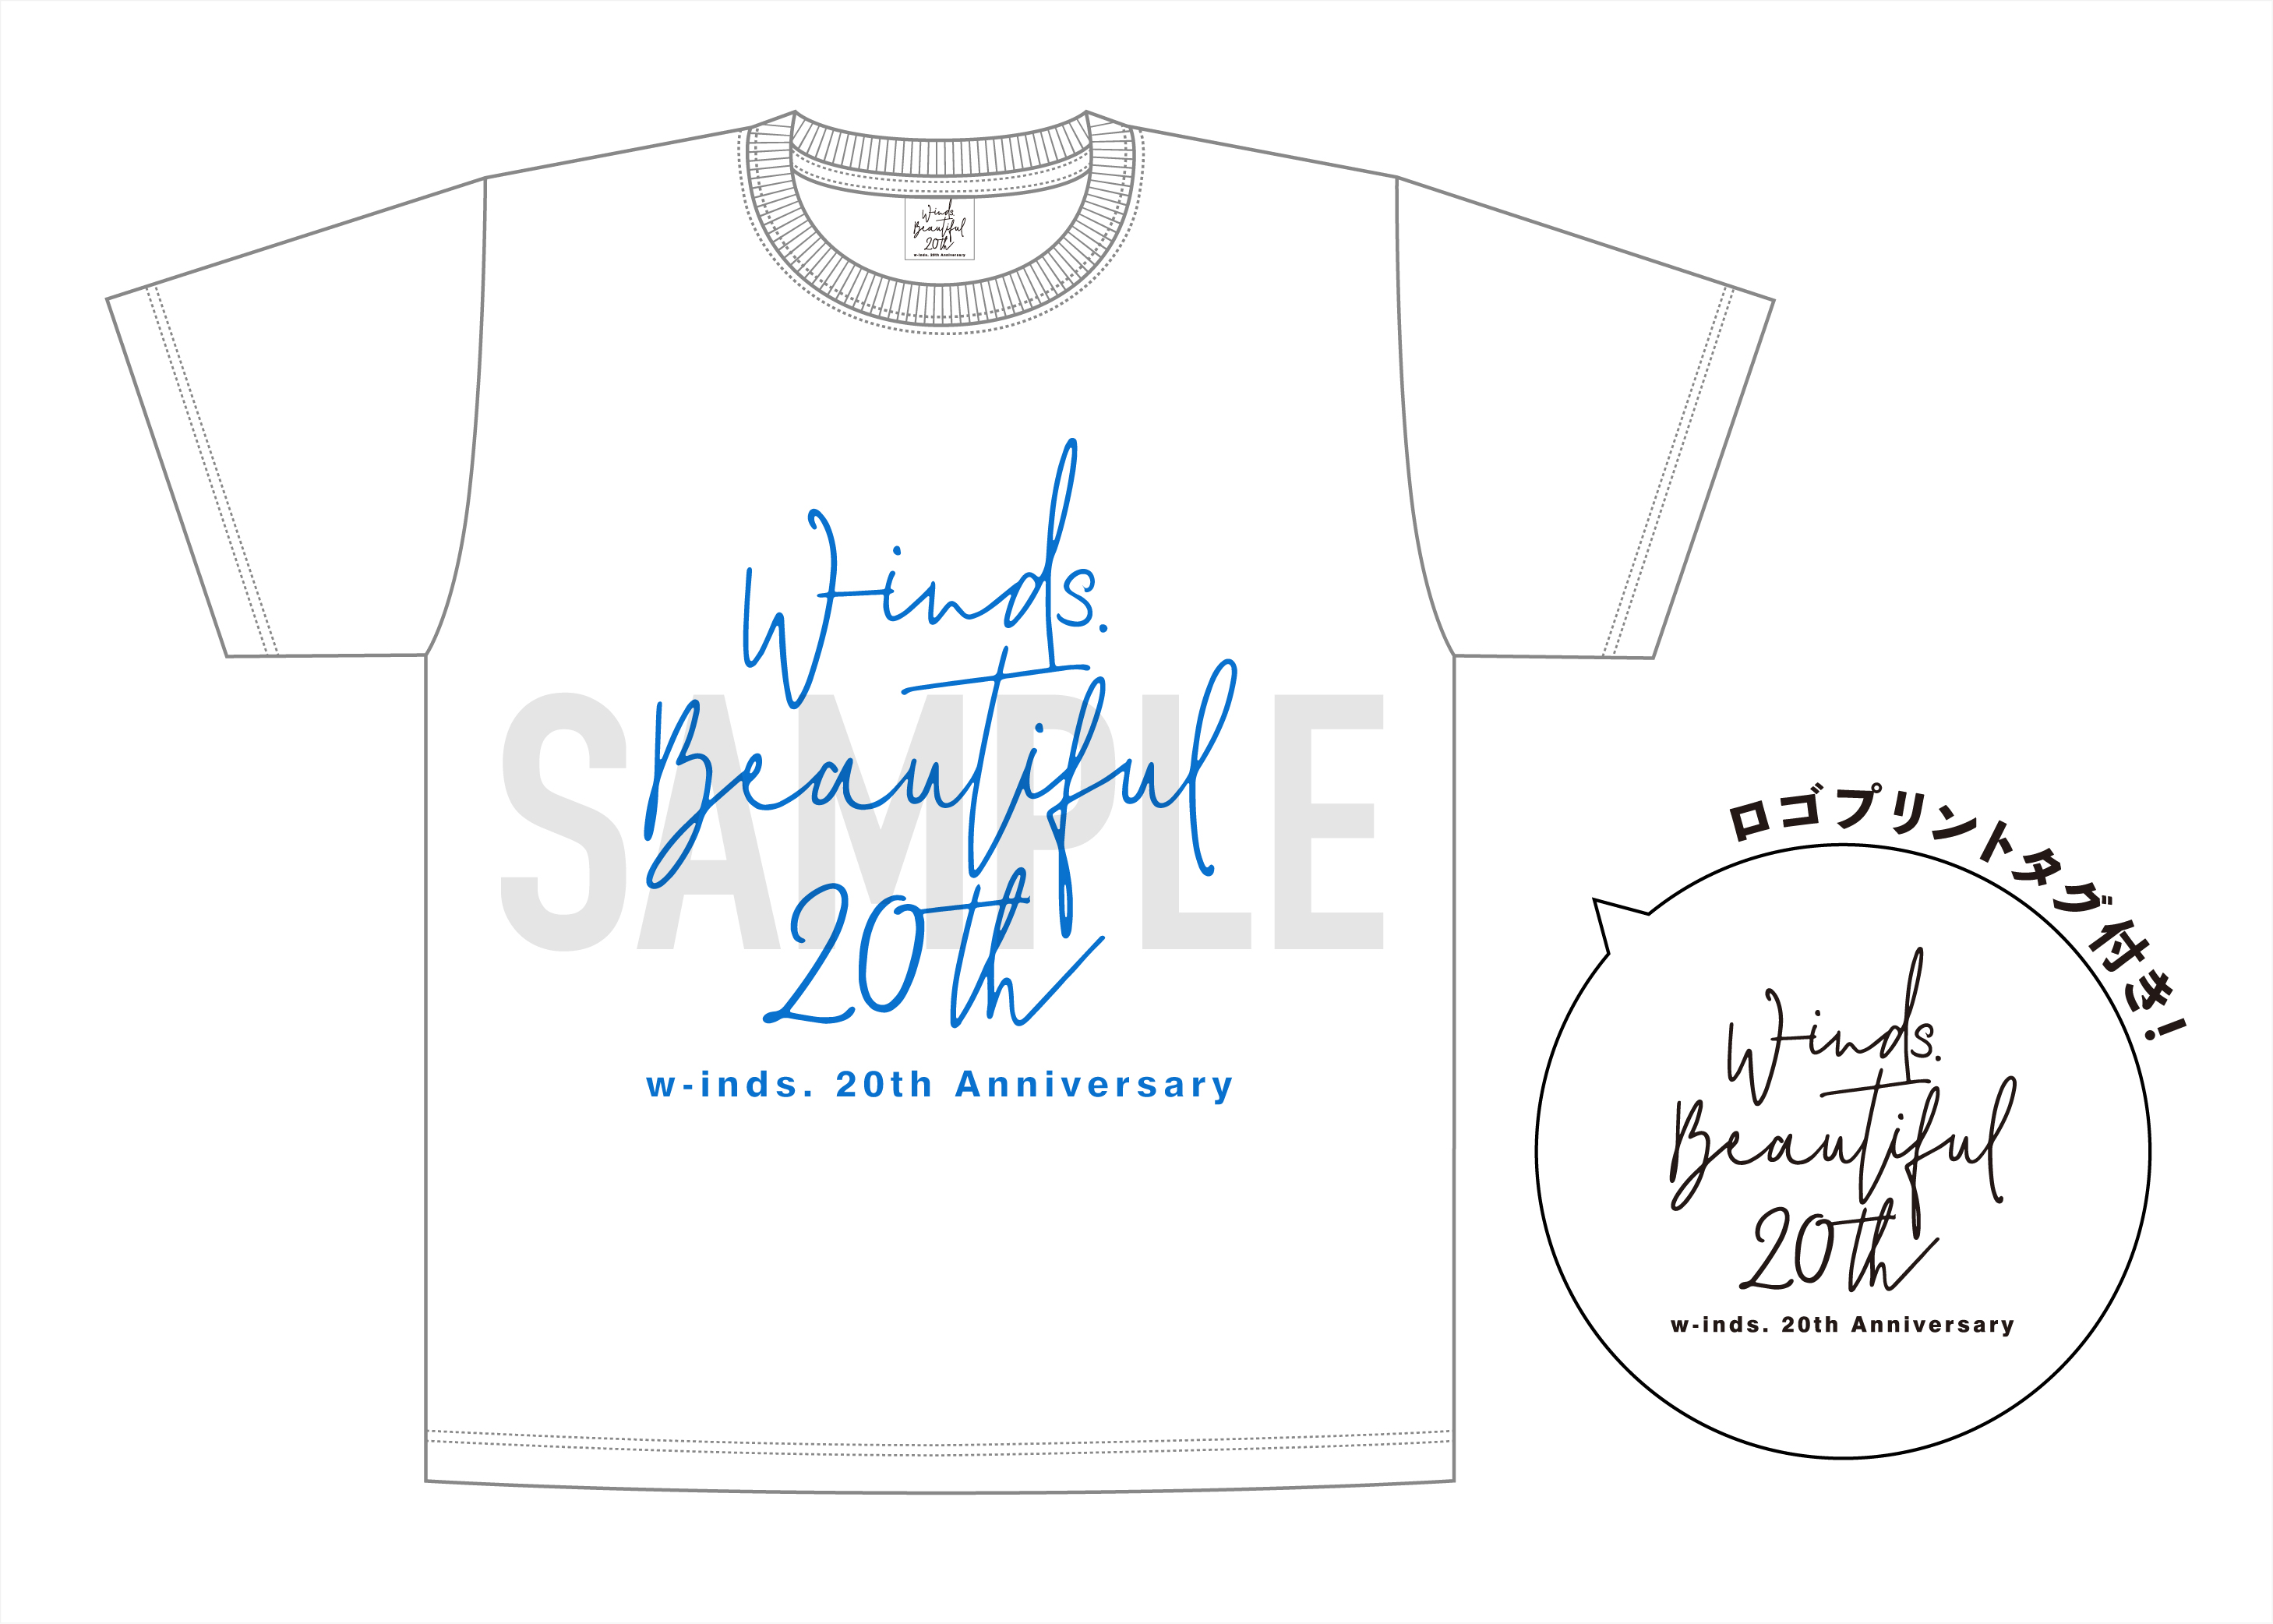 """[Ponycanyon Online Limited Version] w-inds. """"WORKS BEST 2"""" DVD+ w-inds. Beautiful 20th T-shirt White ver. (Size M) Release in July21st 2021 No.3"""